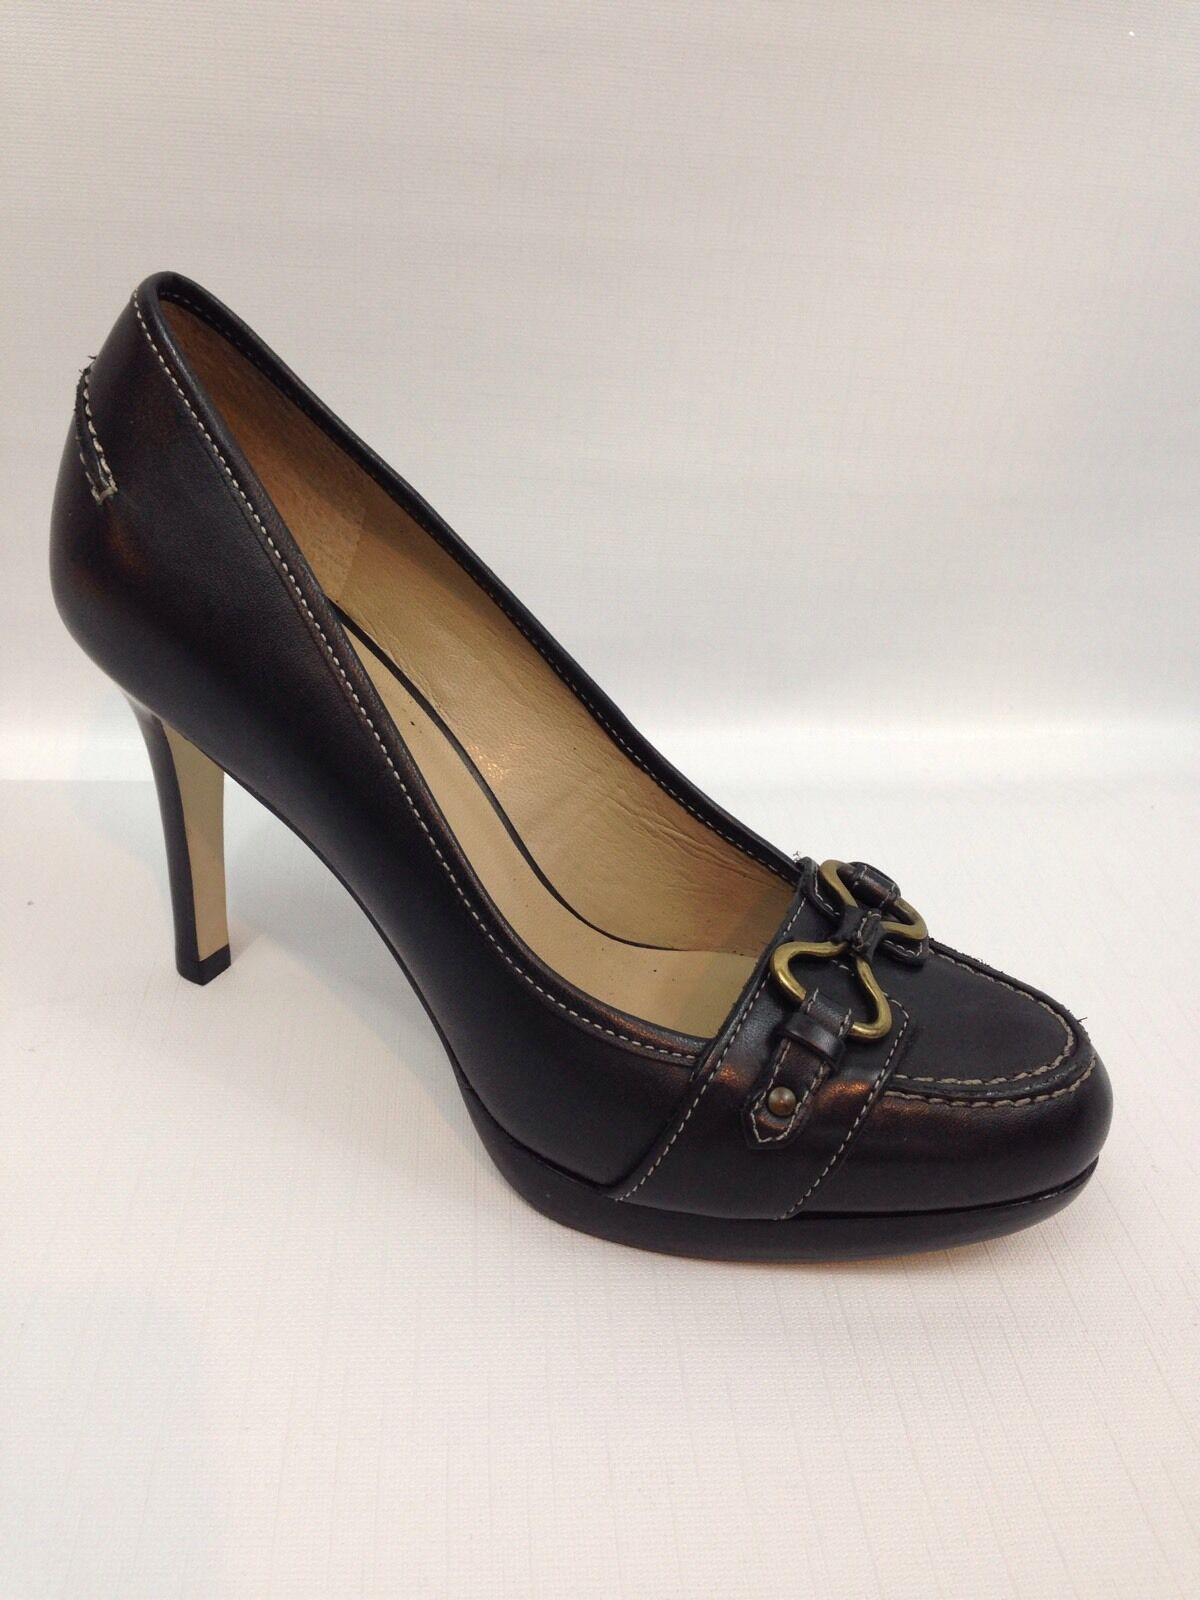 Women's Talbots Black Leather High Heel Pumps w Buckle Accent - 5.5 B